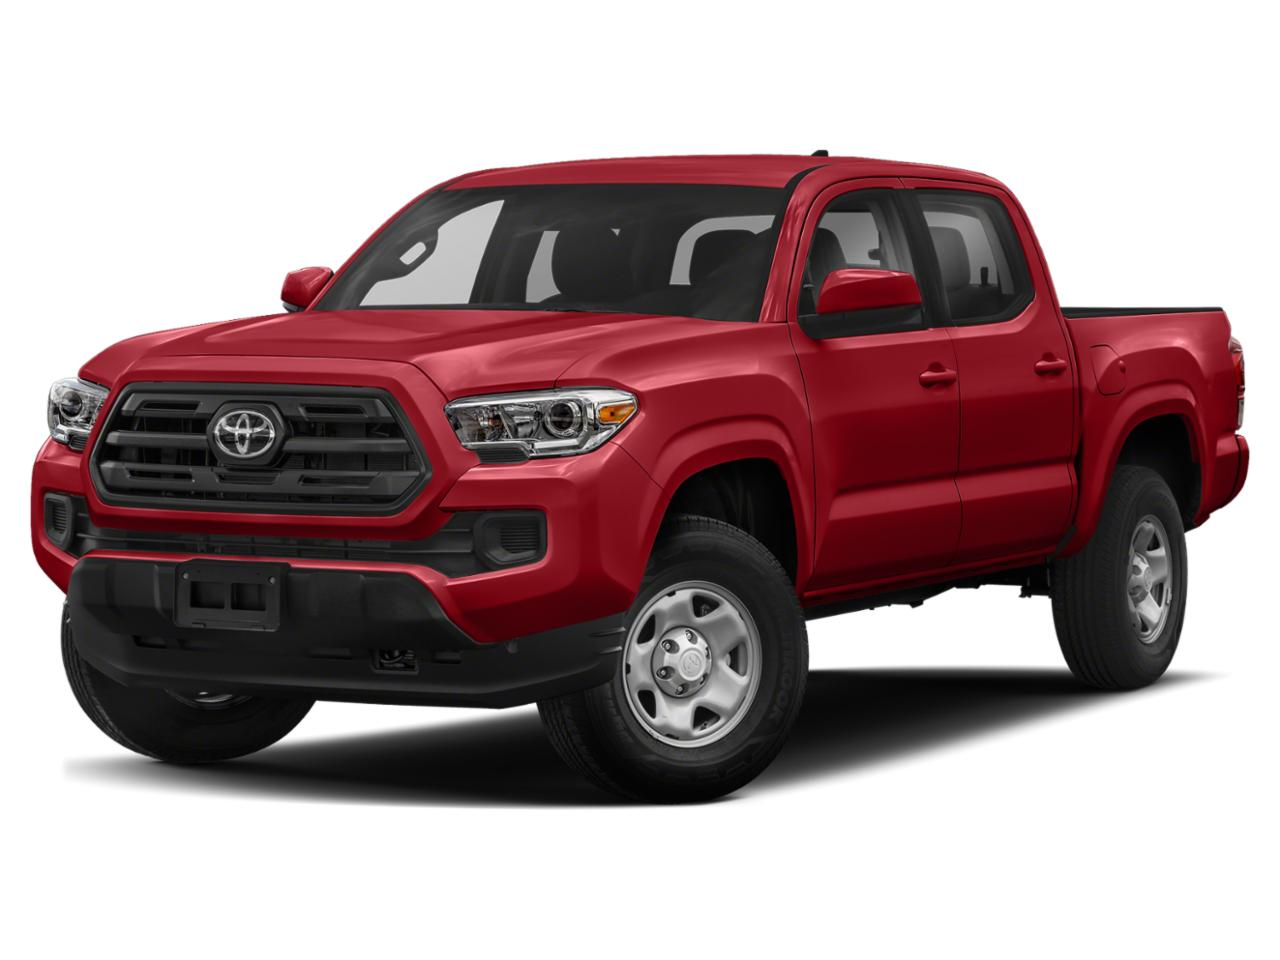 2019 Toyota Tacoma 2WD Vehicle Photo in Concord, NC 28027